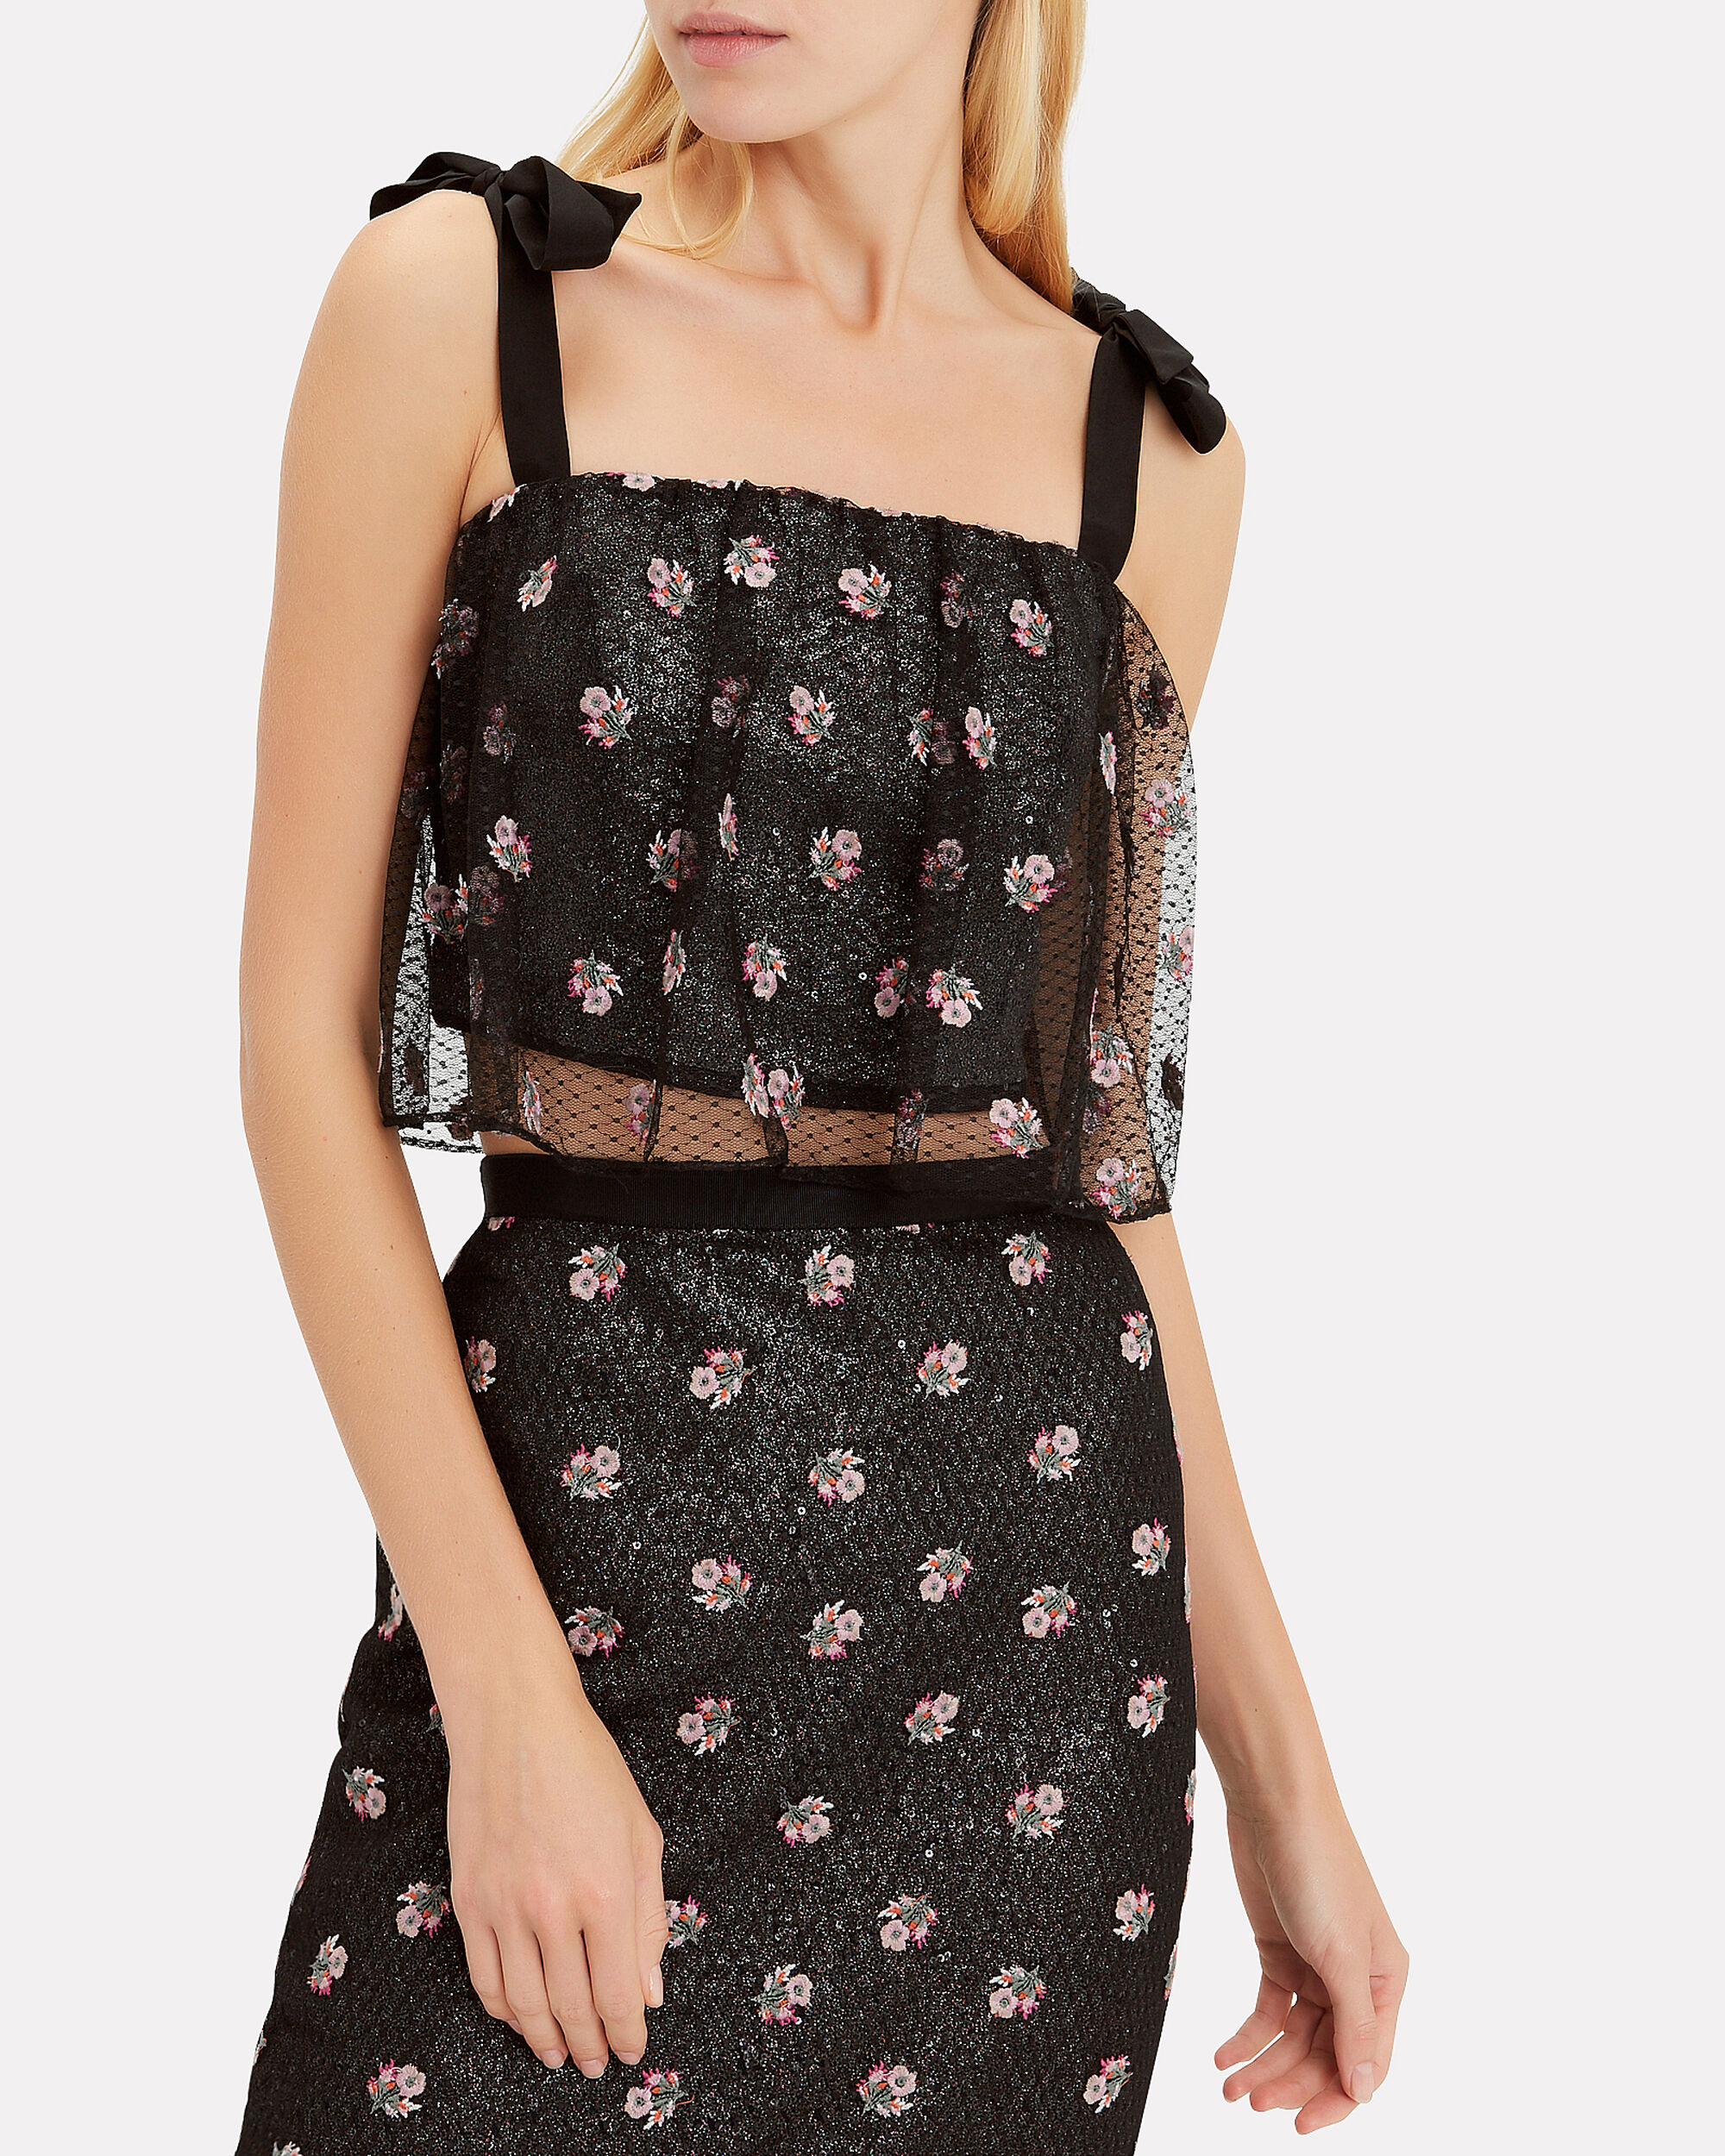 Jemi Top, BLACK/FLORAL, hi-res